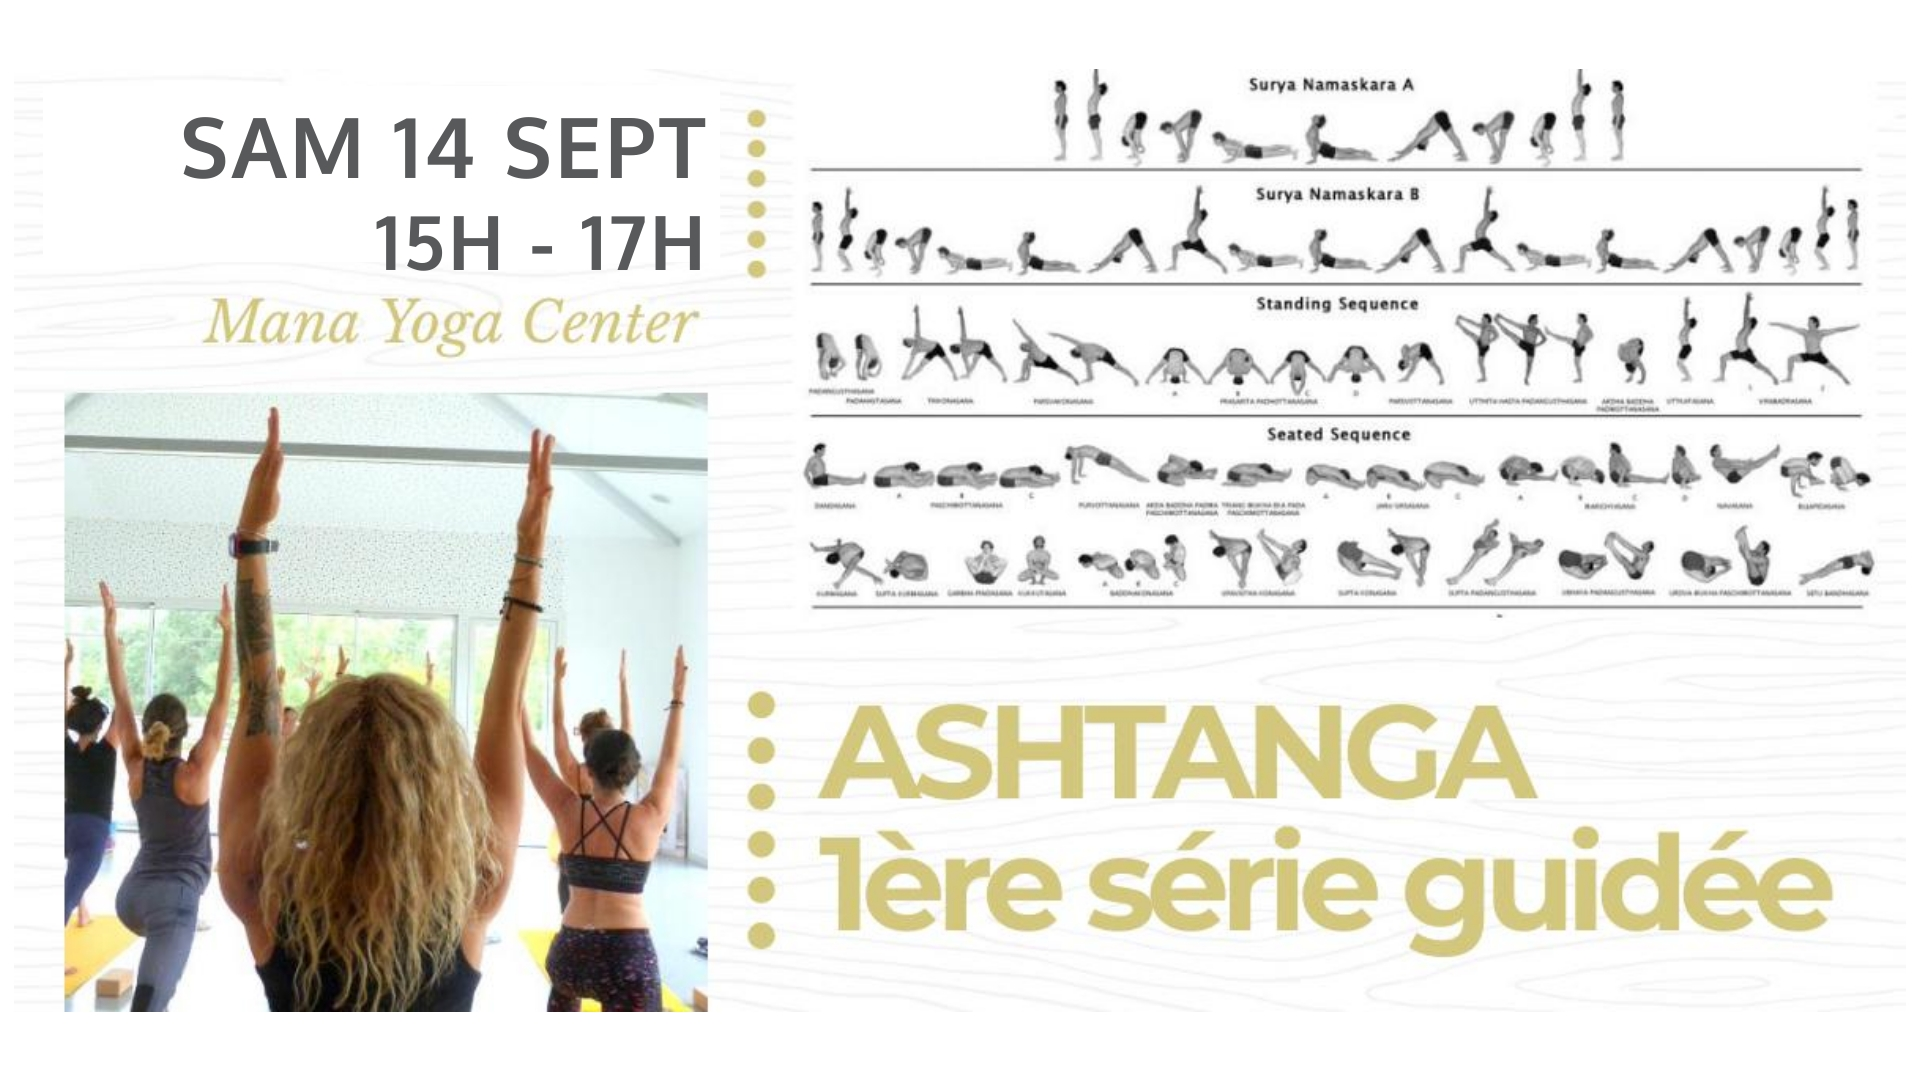 Ashtanga Série Guidée 14 septembre Mana Yoga Center Hossegor Soulshine